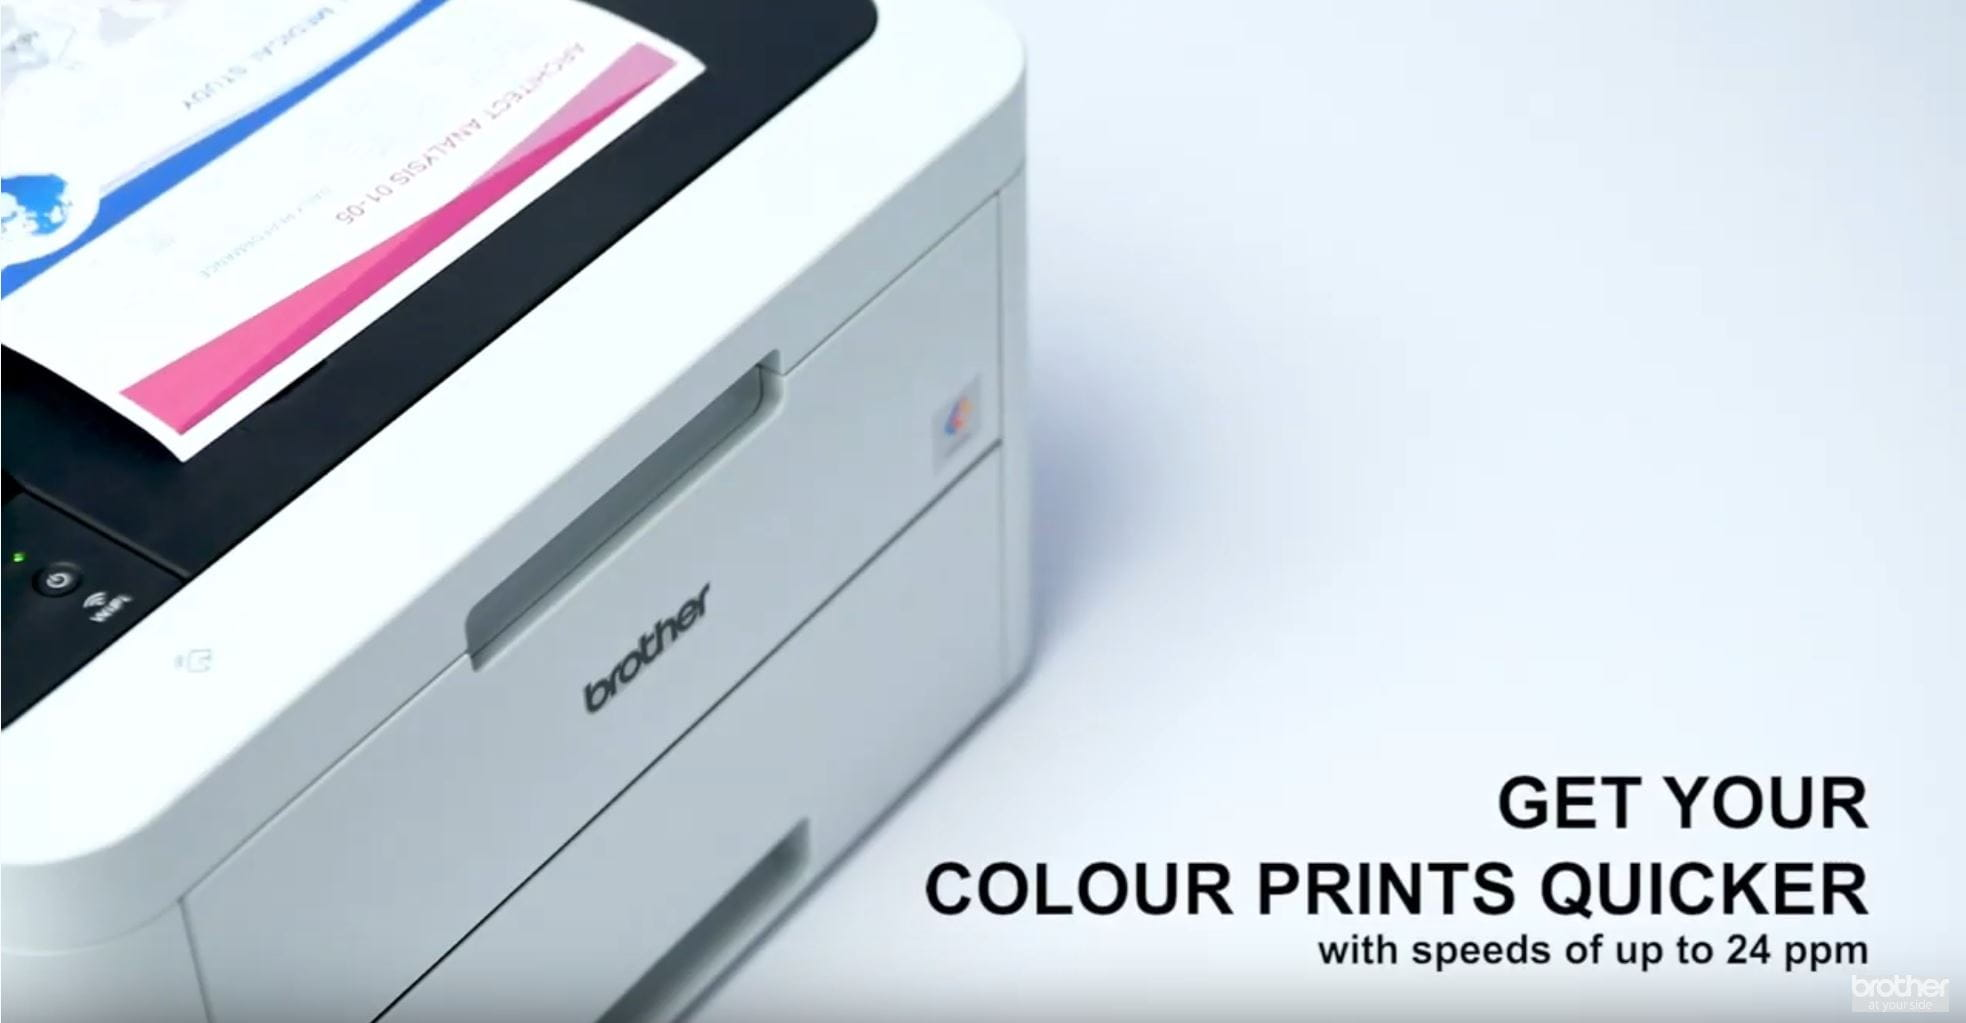 MFC-L3770CDW Colour Wireless LED 4-in-1 Printer 6